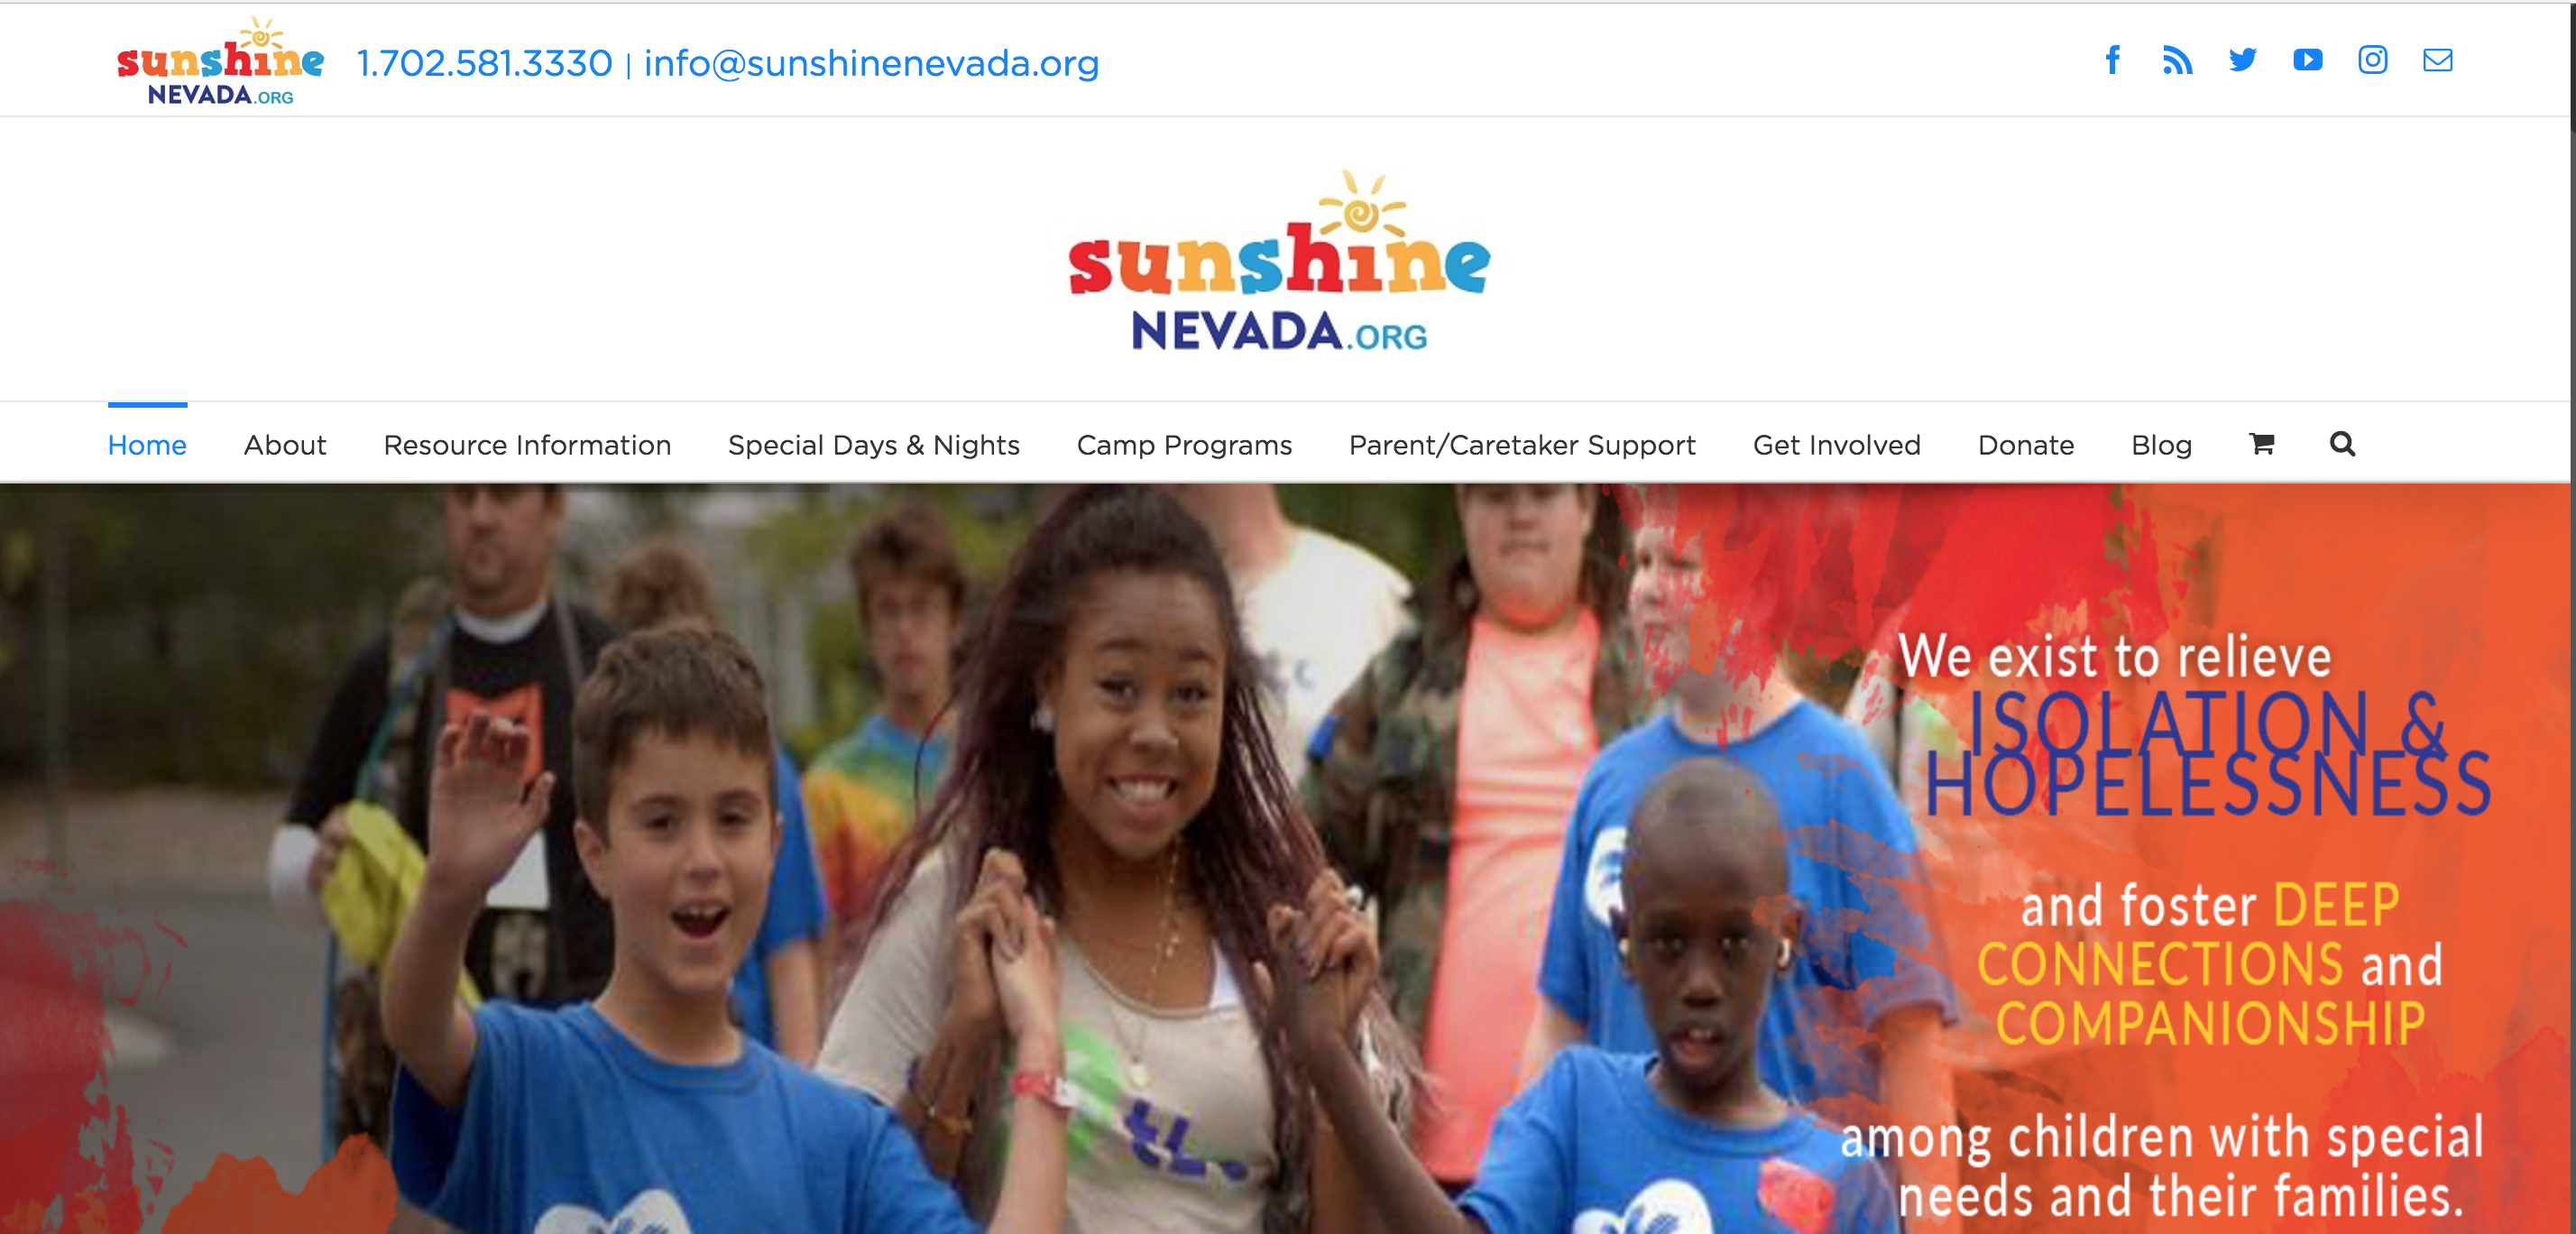 Sunshine Nevada Organization Home Page website image